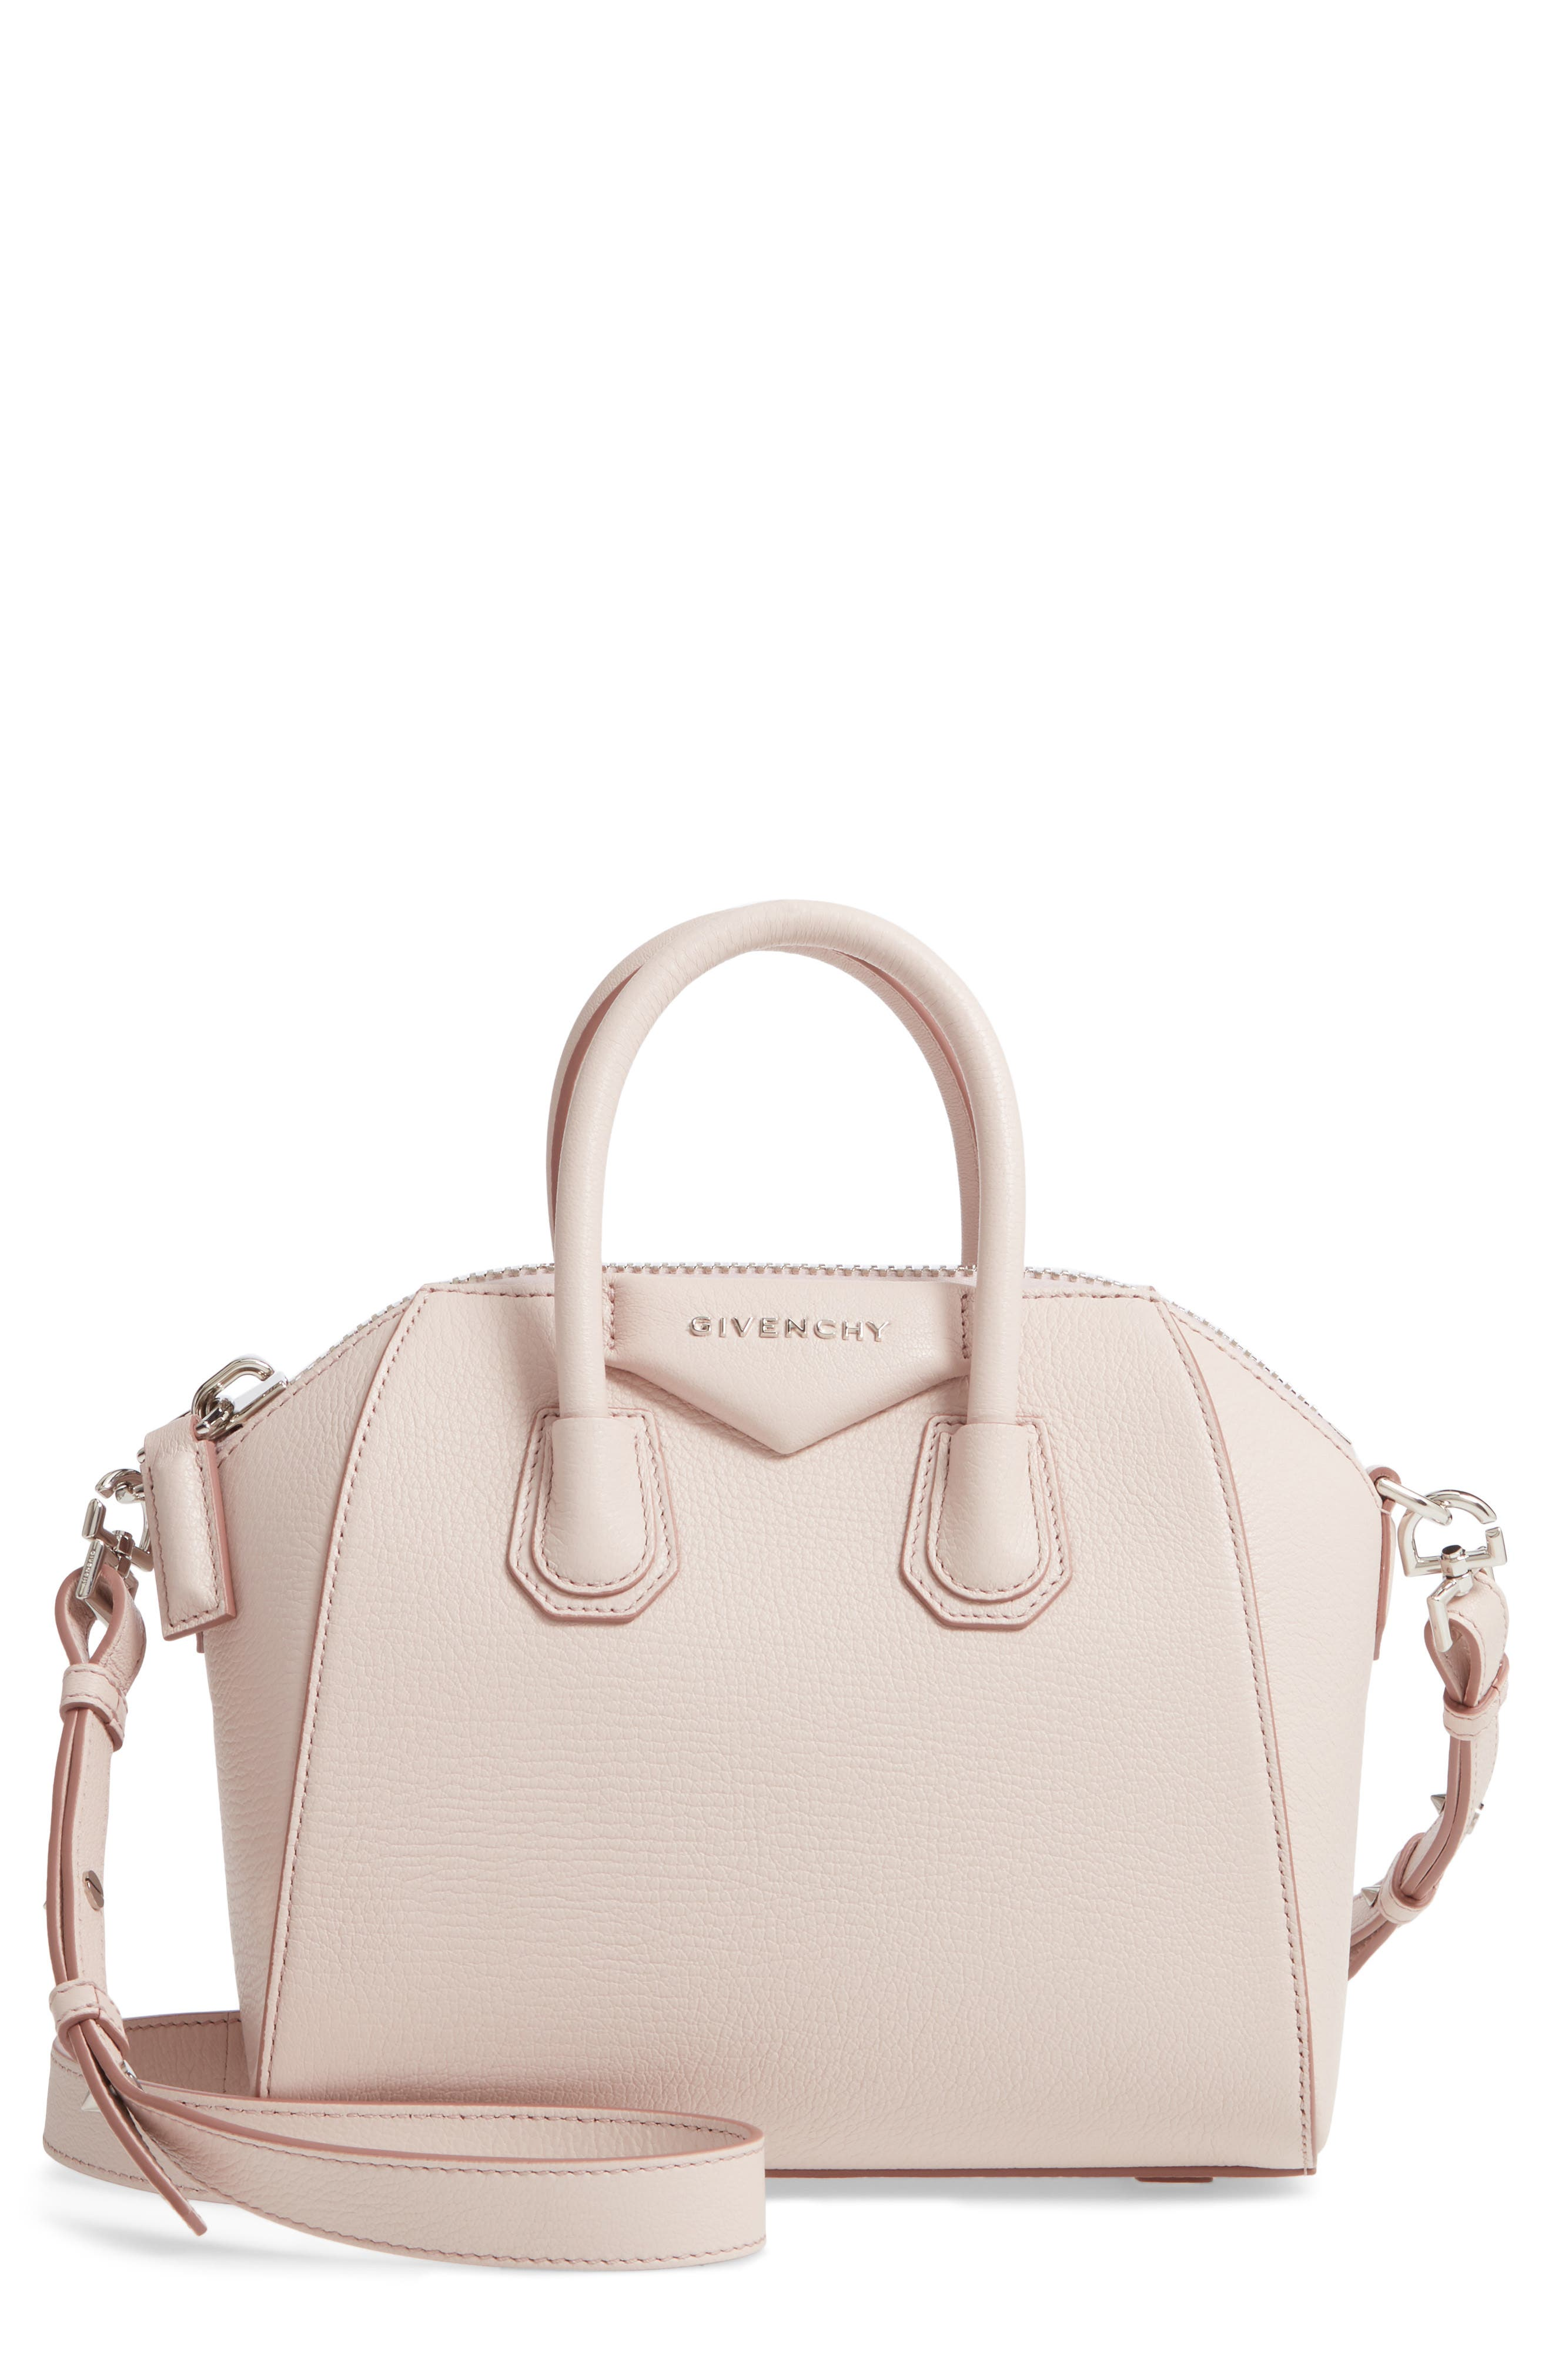 GIVENCHY 'Mini Antigona' Sugar Leather Satchel, Main, color, PALE PINK